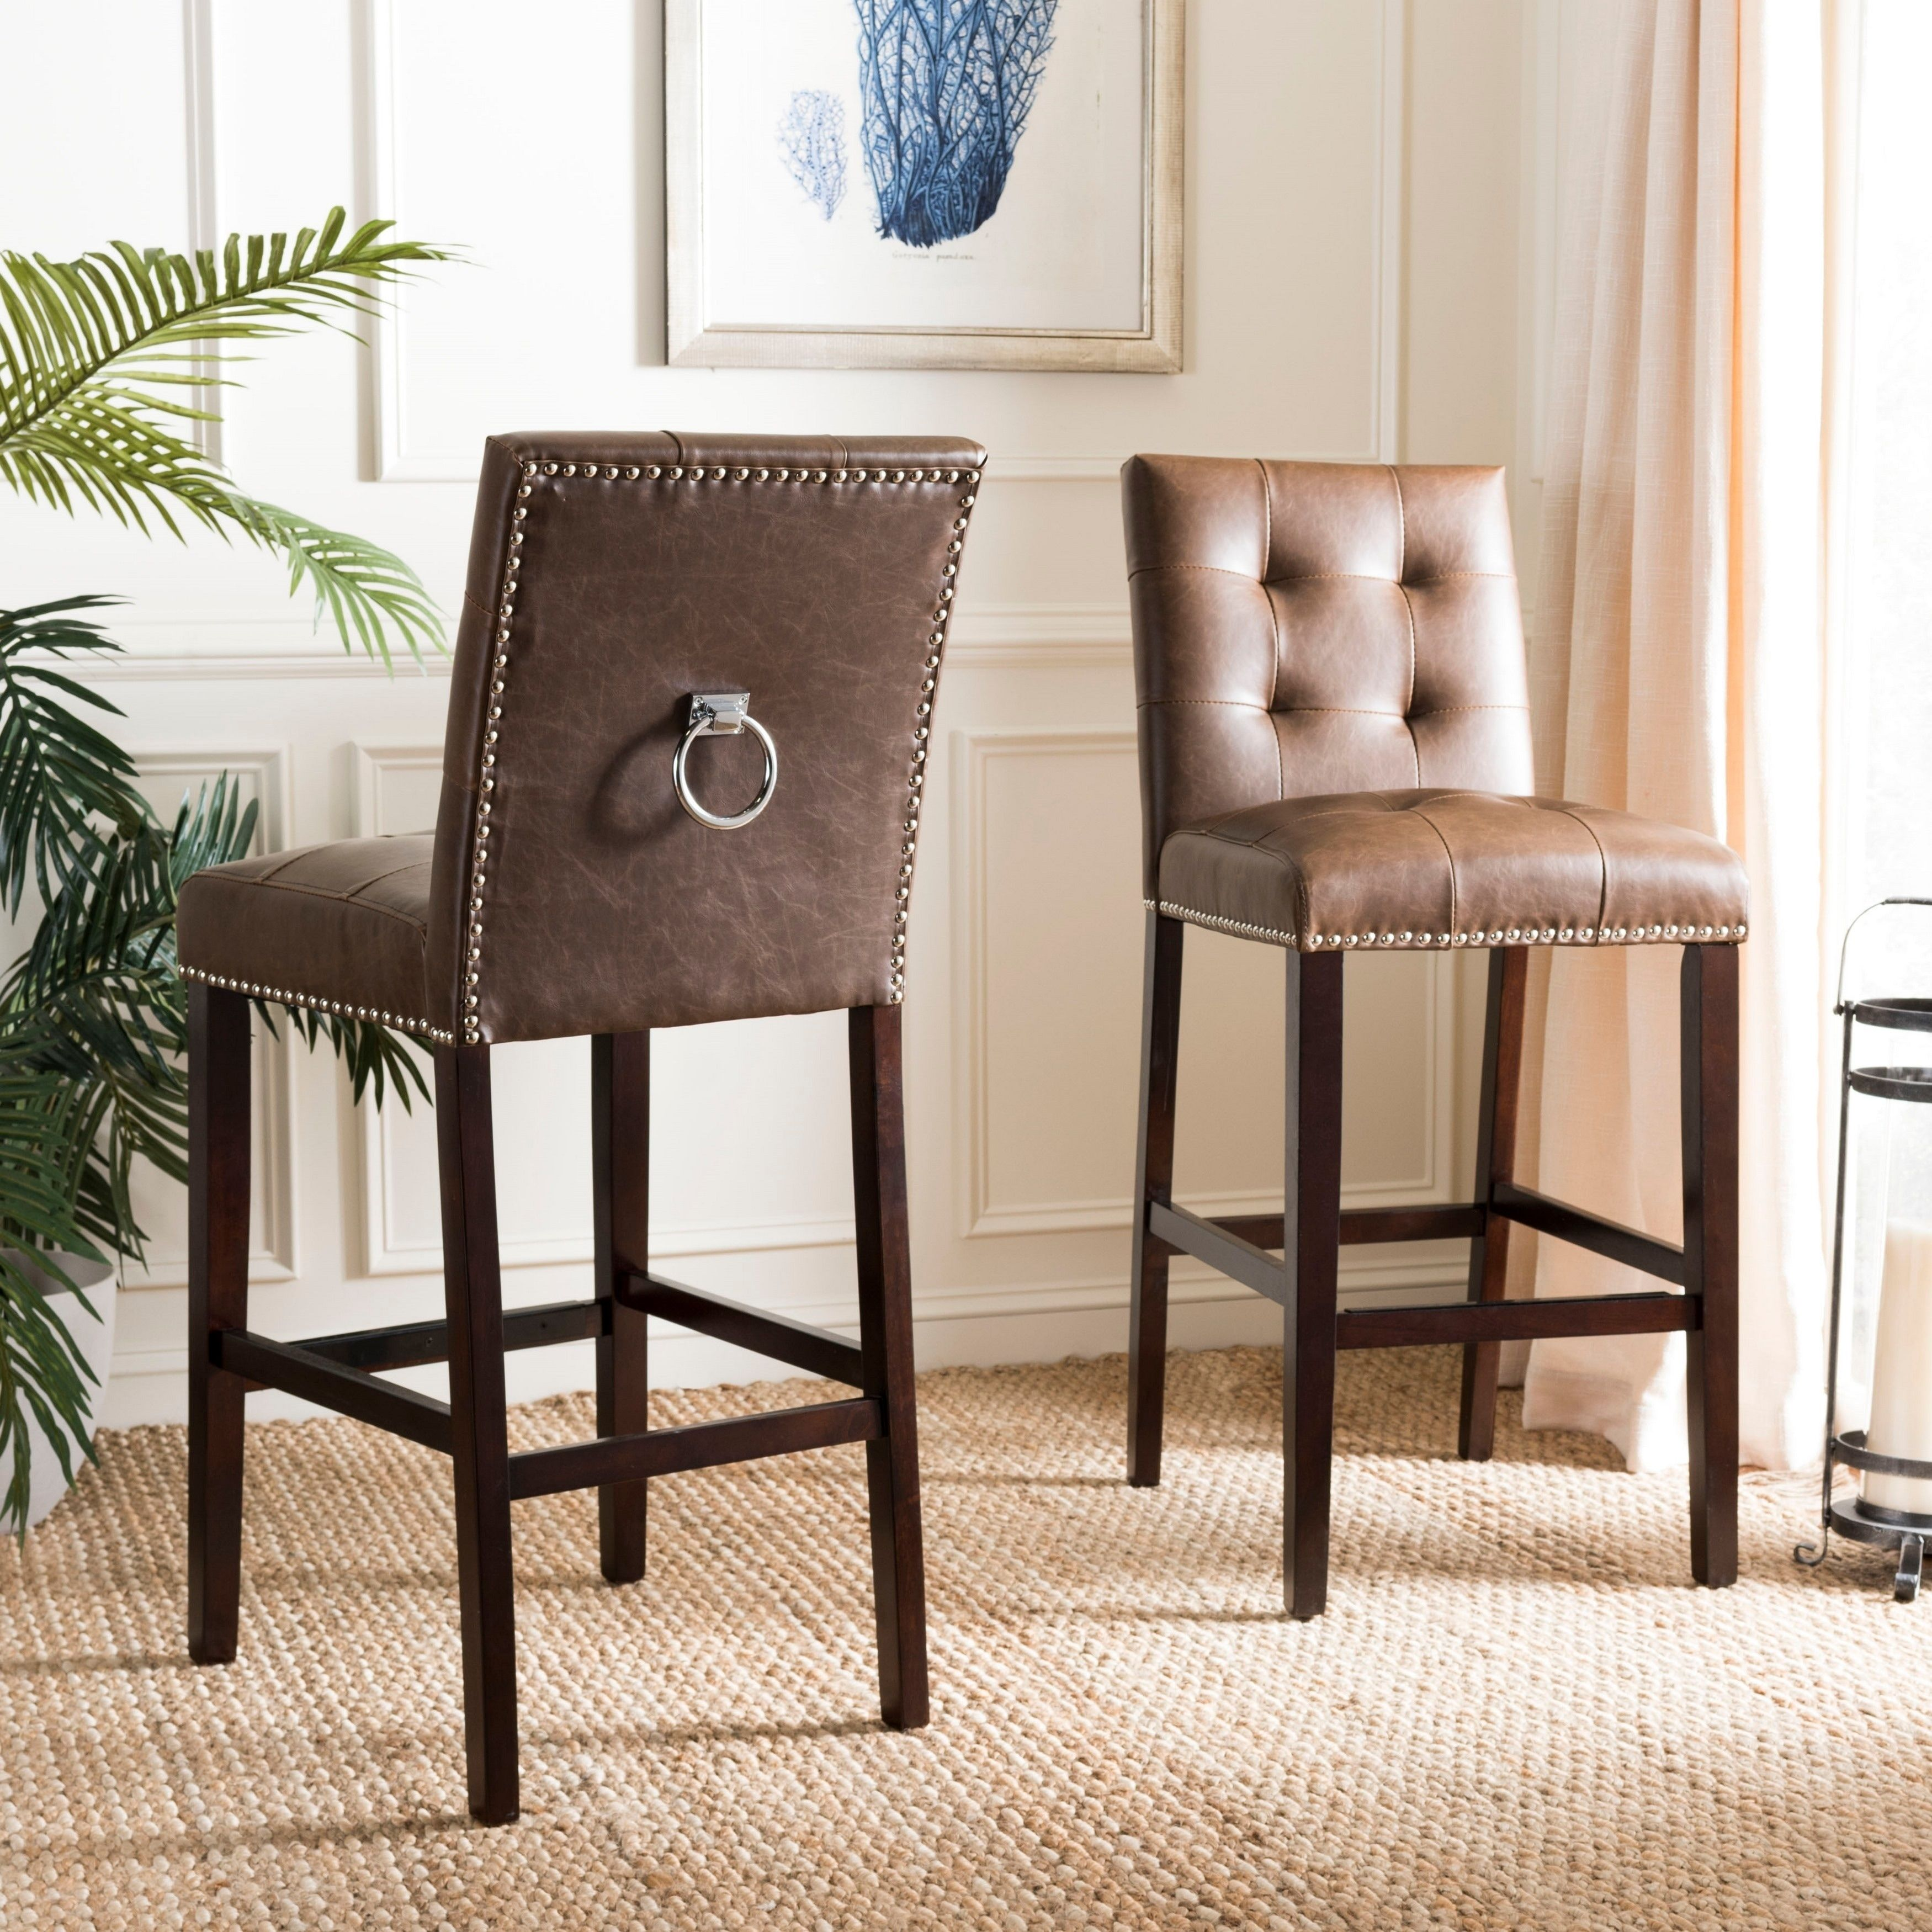 Super Safavieh 30 5 Nikita Bar Stool Brown Espresso Set Of 2 Creativecarmelina Interior Chair Design Creativecarmelinacom